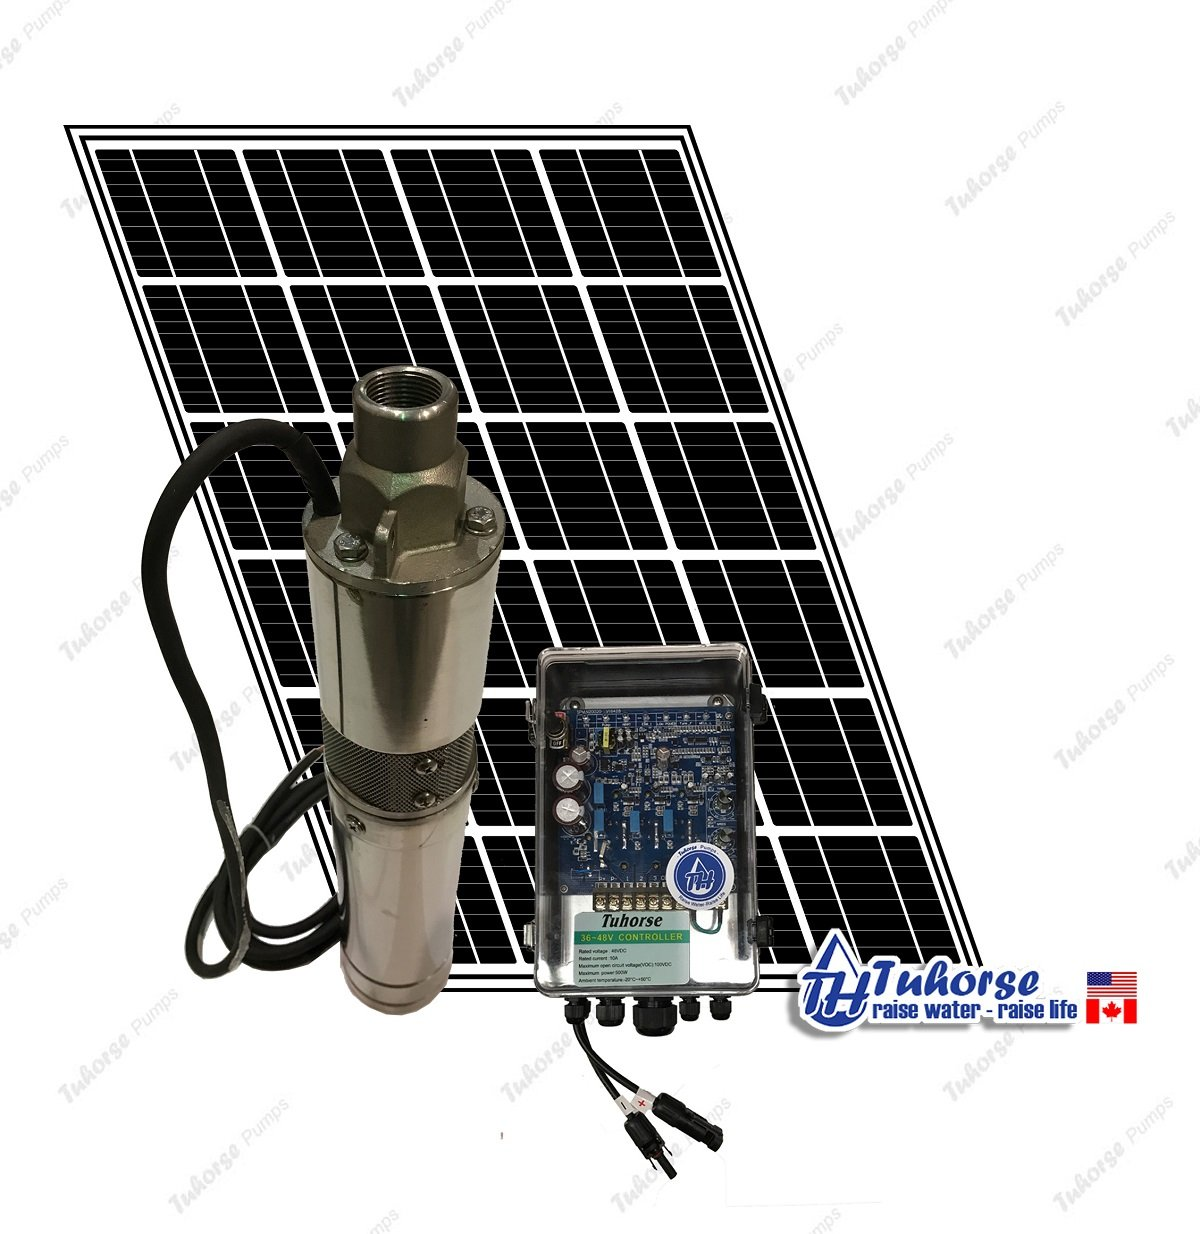 3'' 210W Solar Submersible Deep Well Pump, 1x 195W Solar Panel, 83 feet Cable Complete Kit. Tuhorse